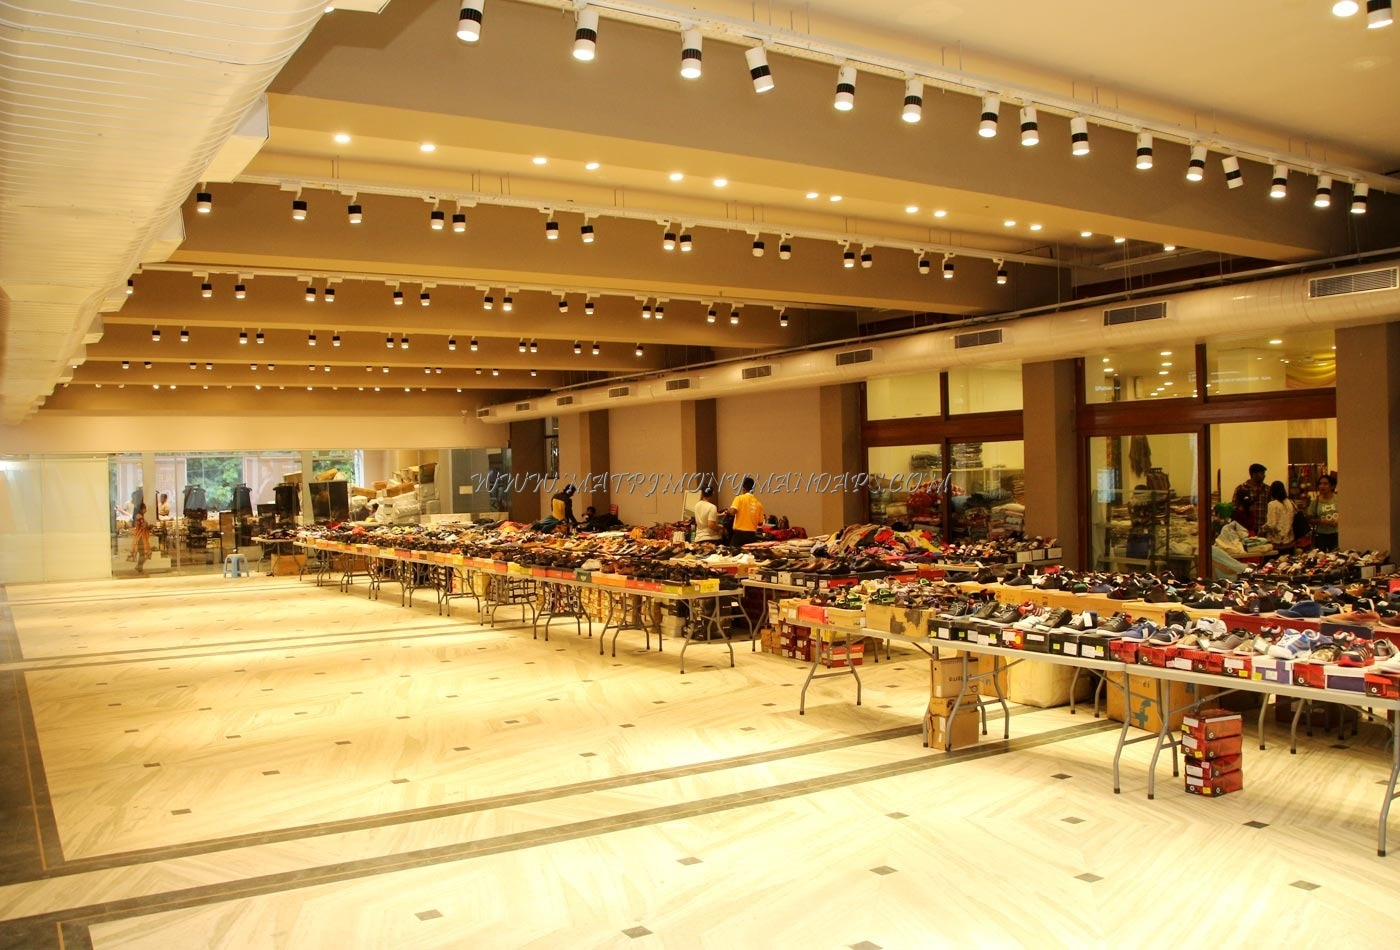 Find the availability of the Safina Plaza UpNdown Imagine Hall (A/C) in Infantry Road, Bangalore and avail special offers